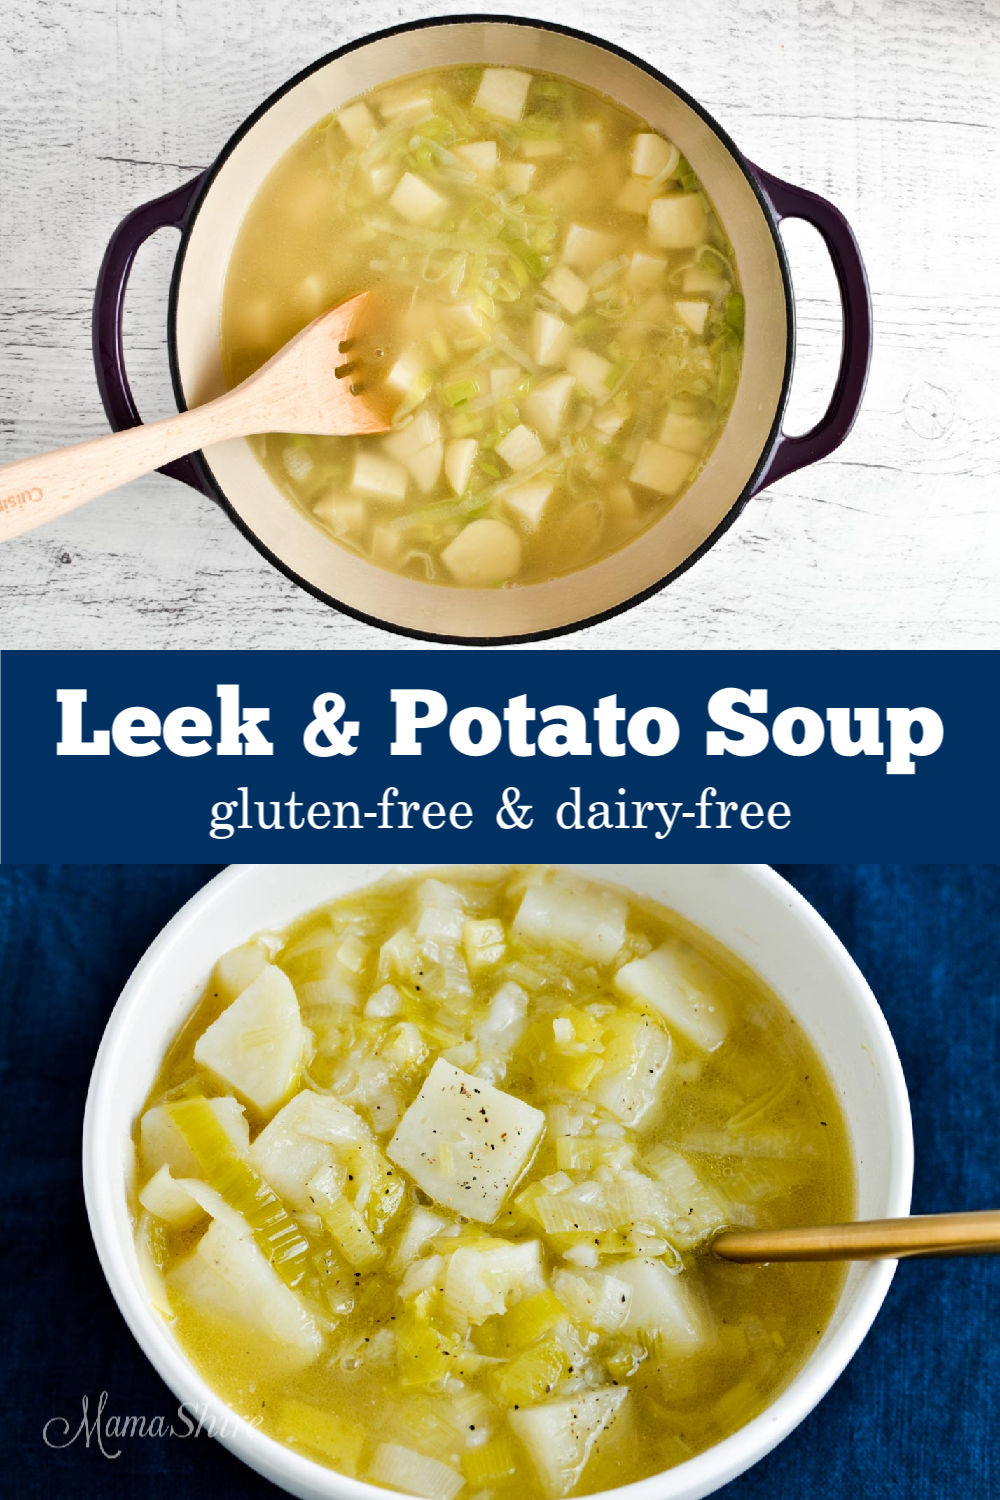 A pot of dairy-free leek and potato soup.